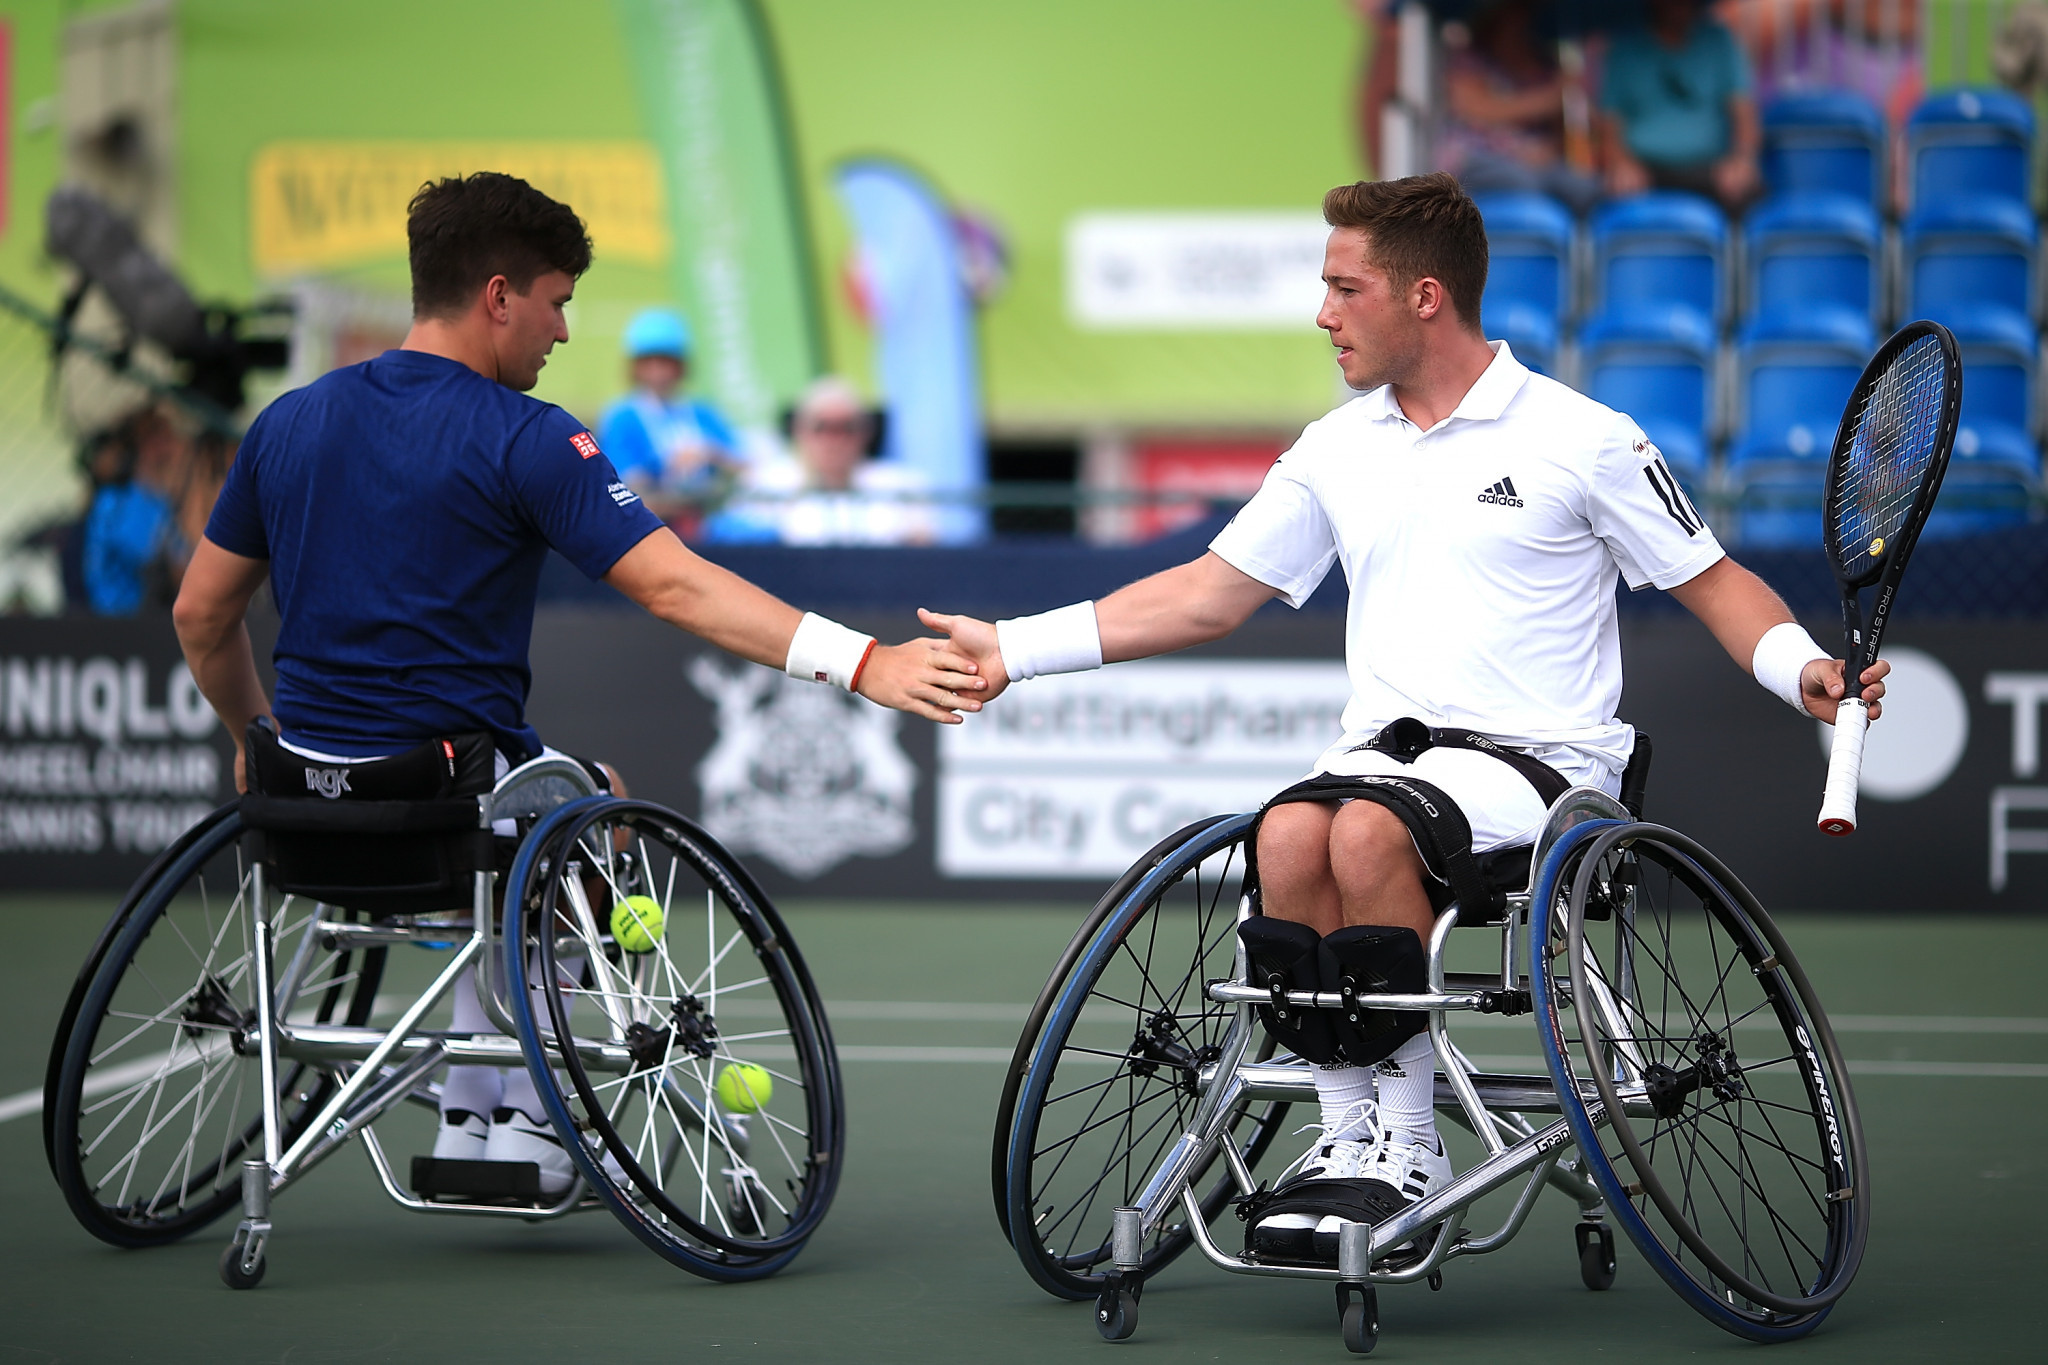 Bad weather puts paid to majority of US Open Wheelchair Tennis schedule on opening day